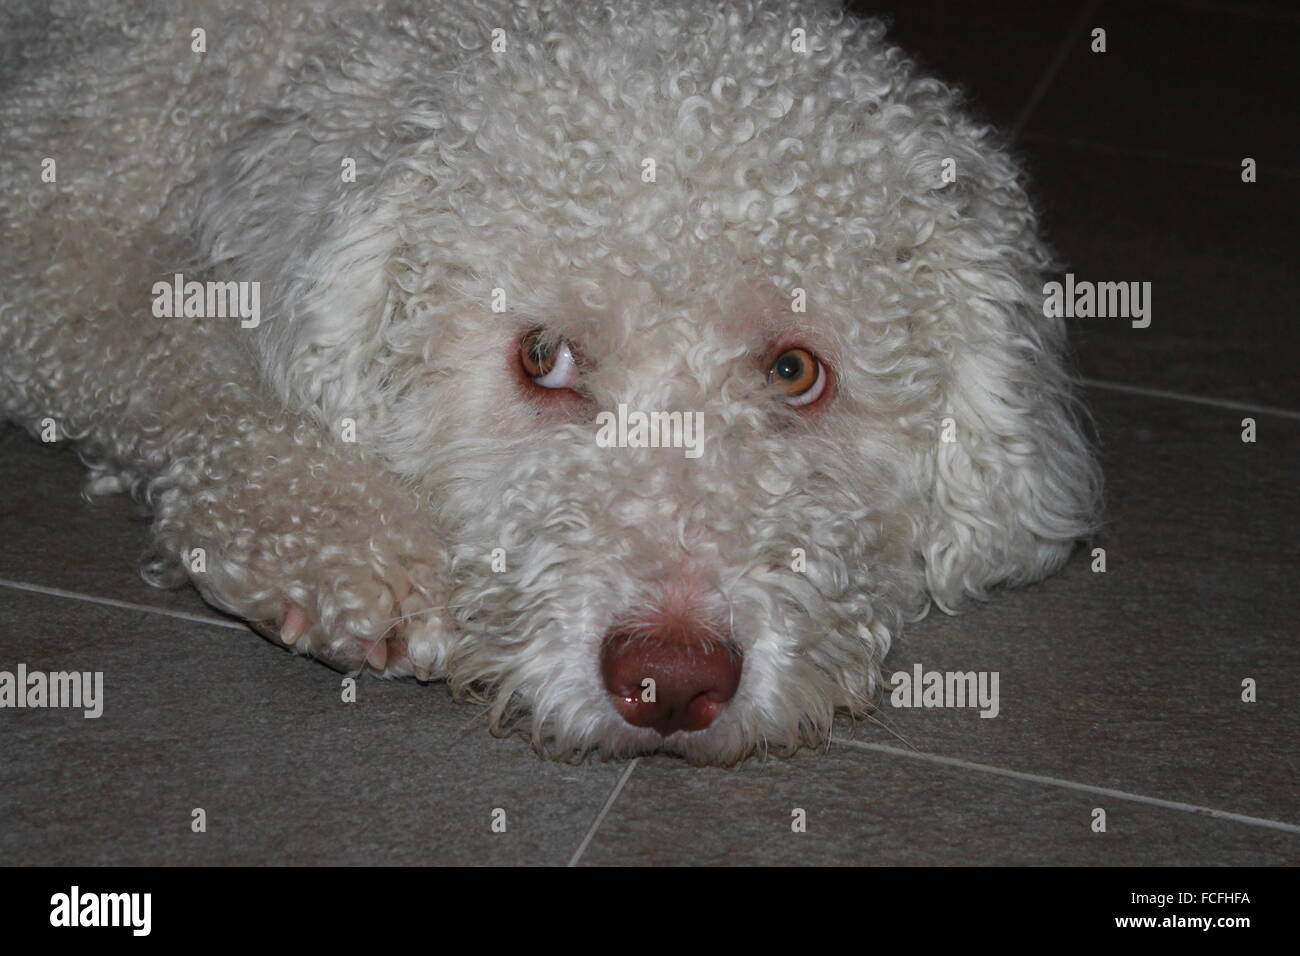 Spanish Water dog (perro de agua español) resting on the floor. Stock Photo